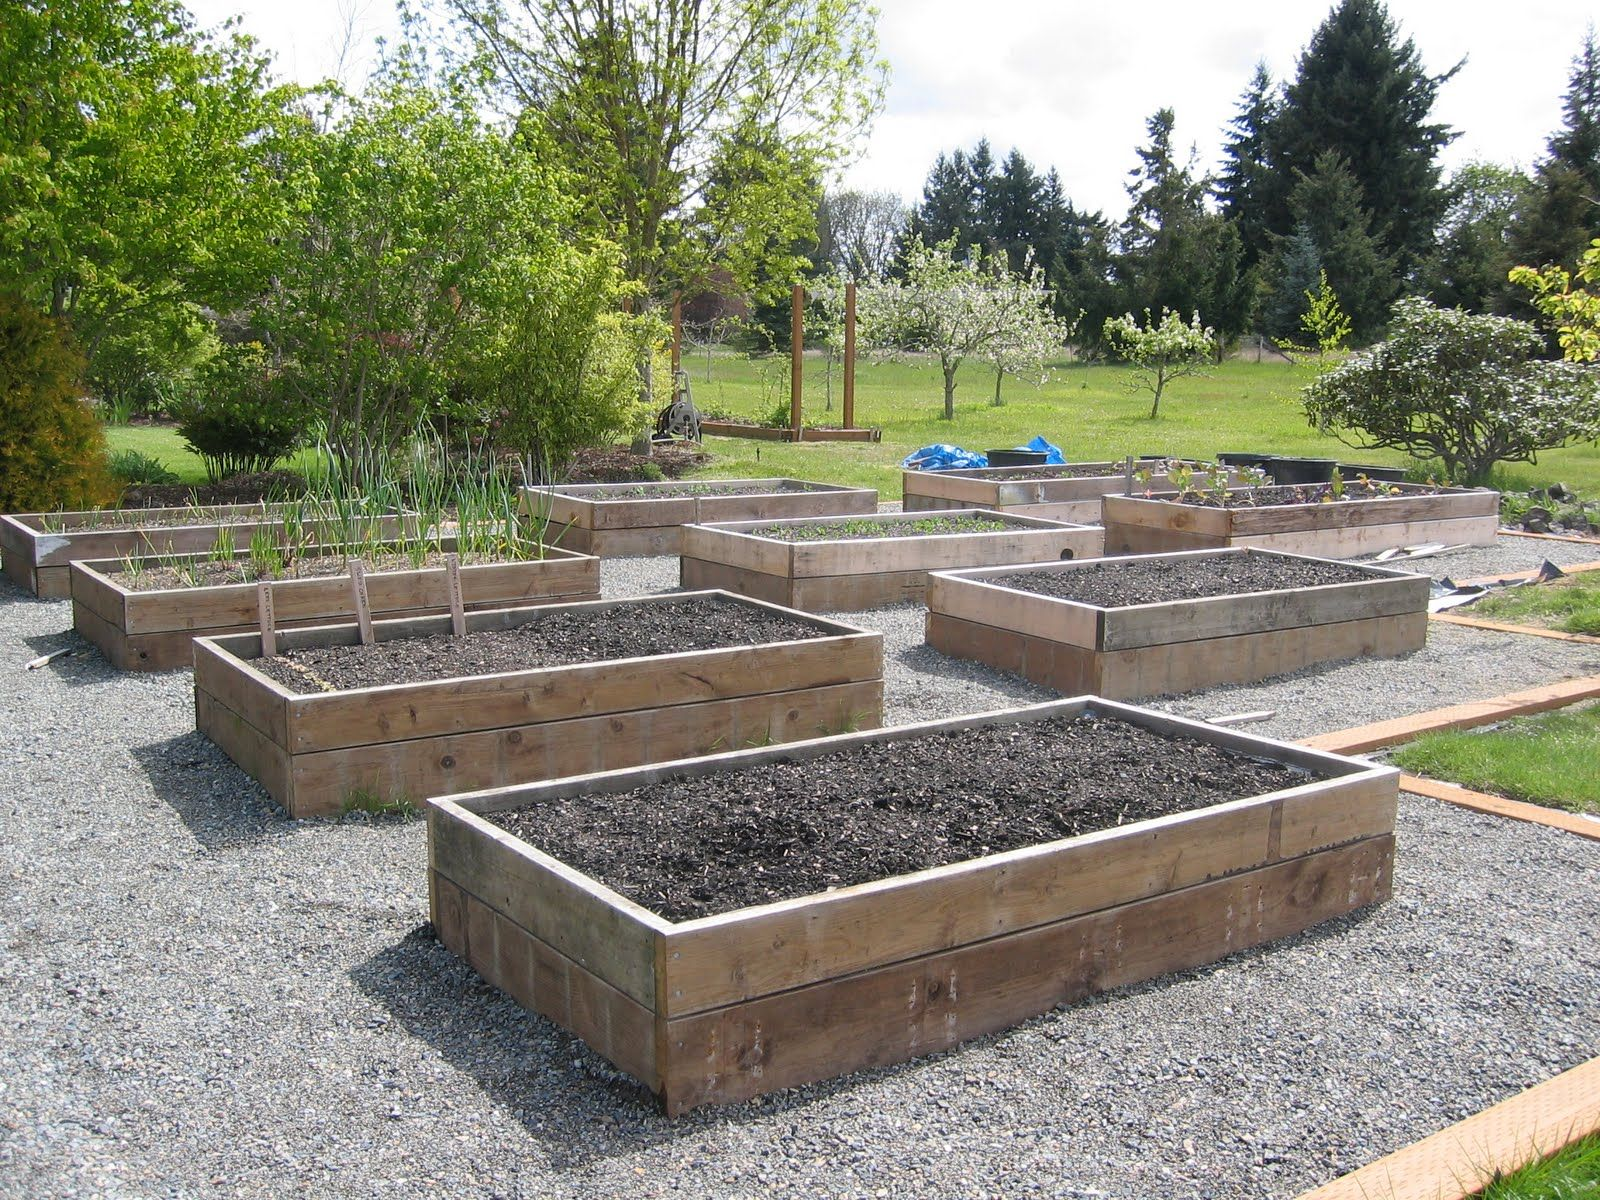 raised bed garden ideas how to build raised vegetable garden woodworking project plans - Vegetable Garden Ideas Designs Raised Gardens